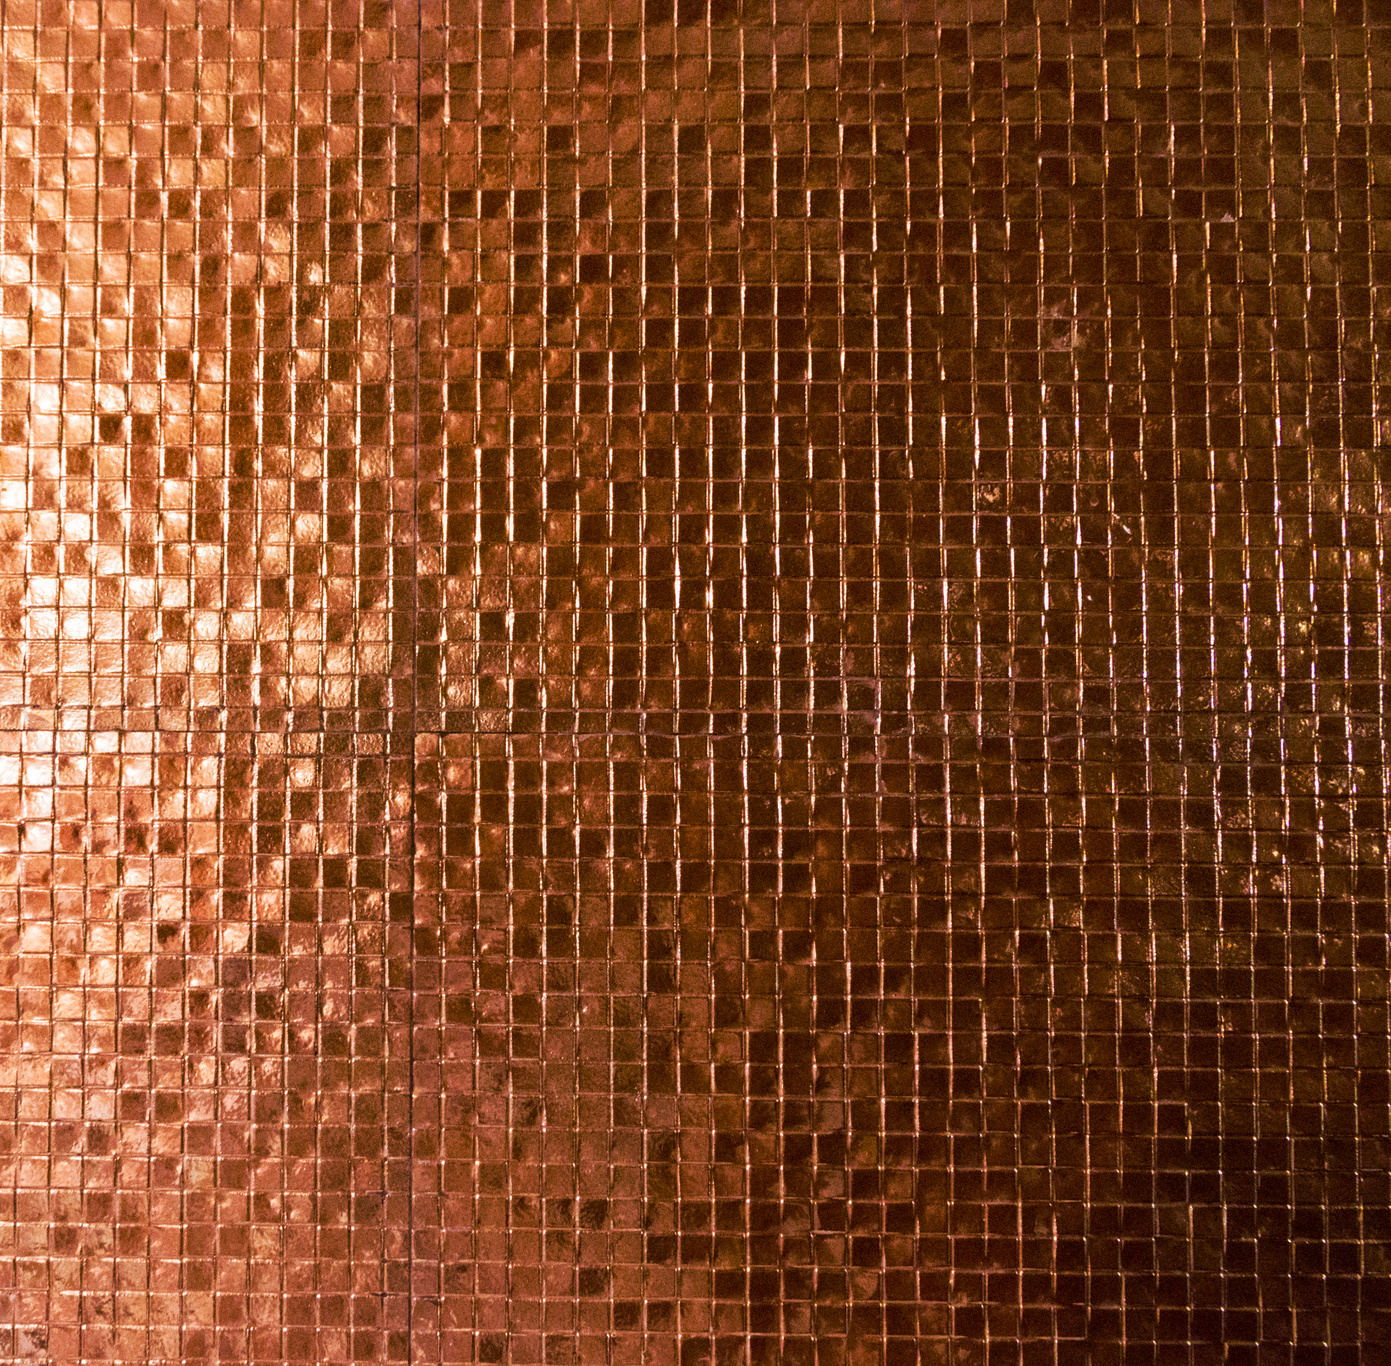 Copper Mosaic Tile Backsplashes